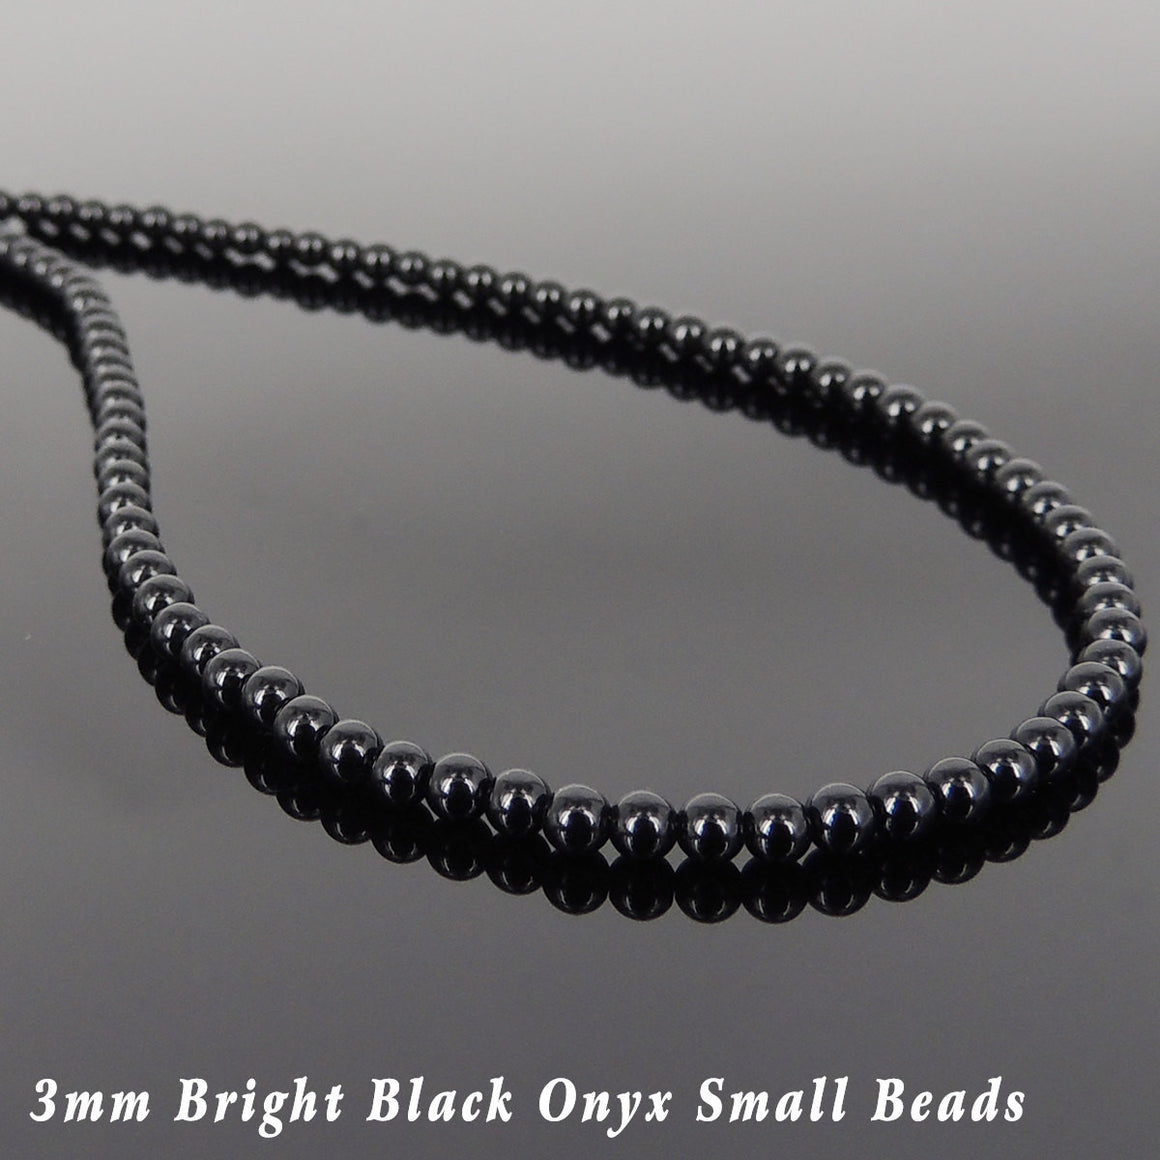 3mm Bright Black Onyx Healing Gemstone Necklace with S925 Sterling Silver Seamless Beads & Clasp - Handmade by Gem & Silver NK144